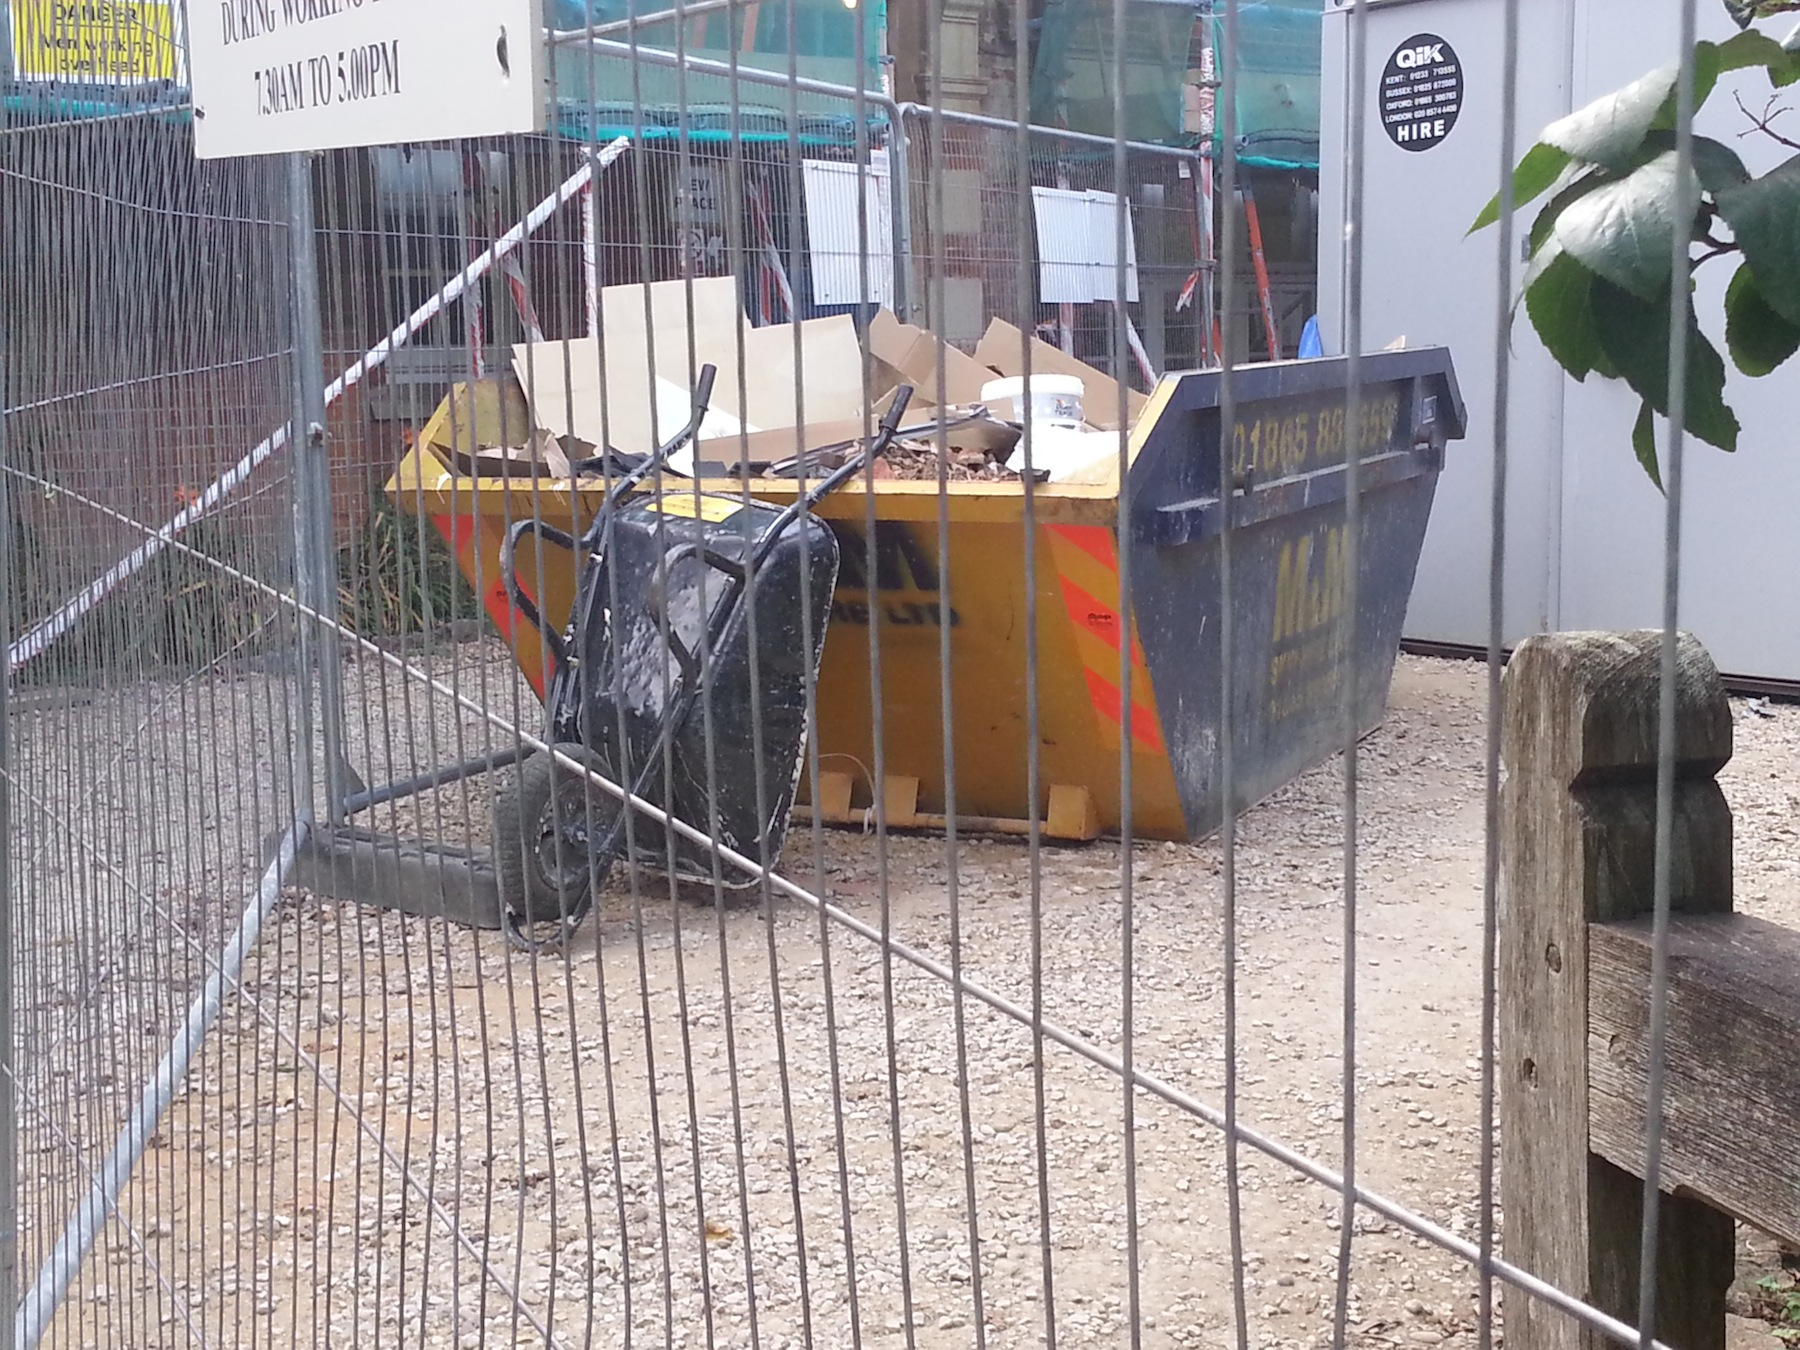 The outstanding architecture of Oxford is ending up in skips